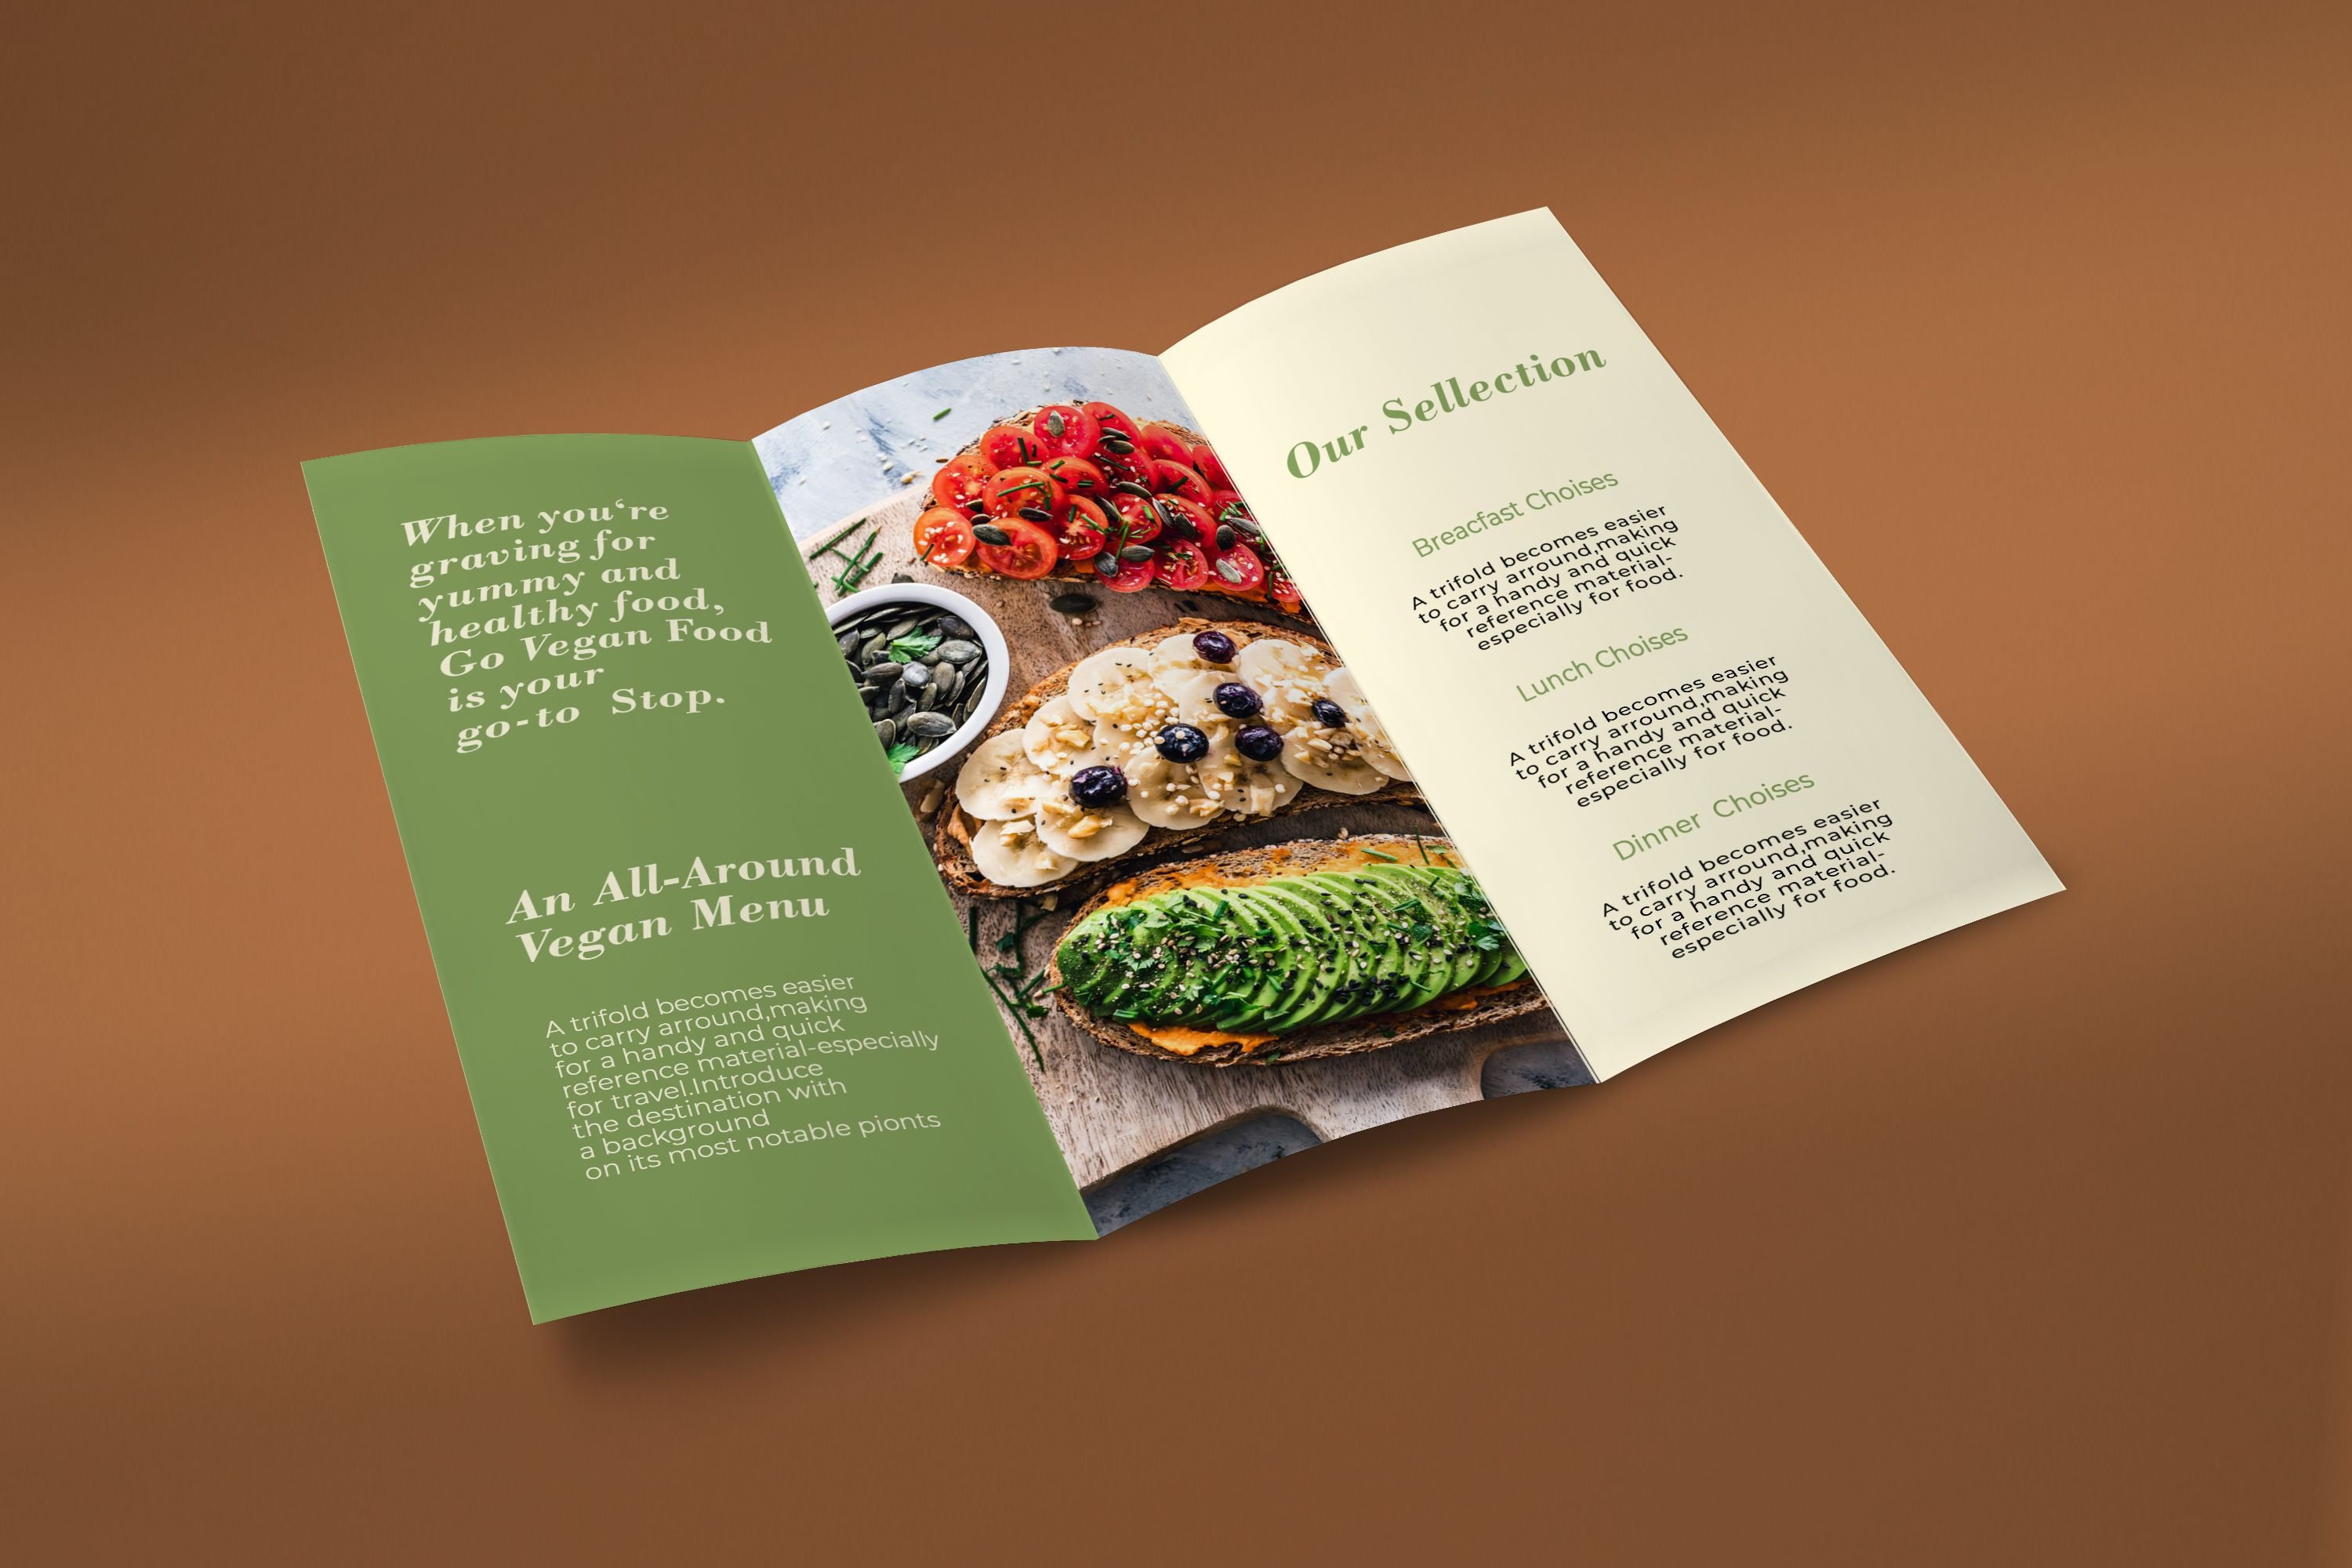 Trifold Vegan Food Brochure - 2 Templates Screenshot 1